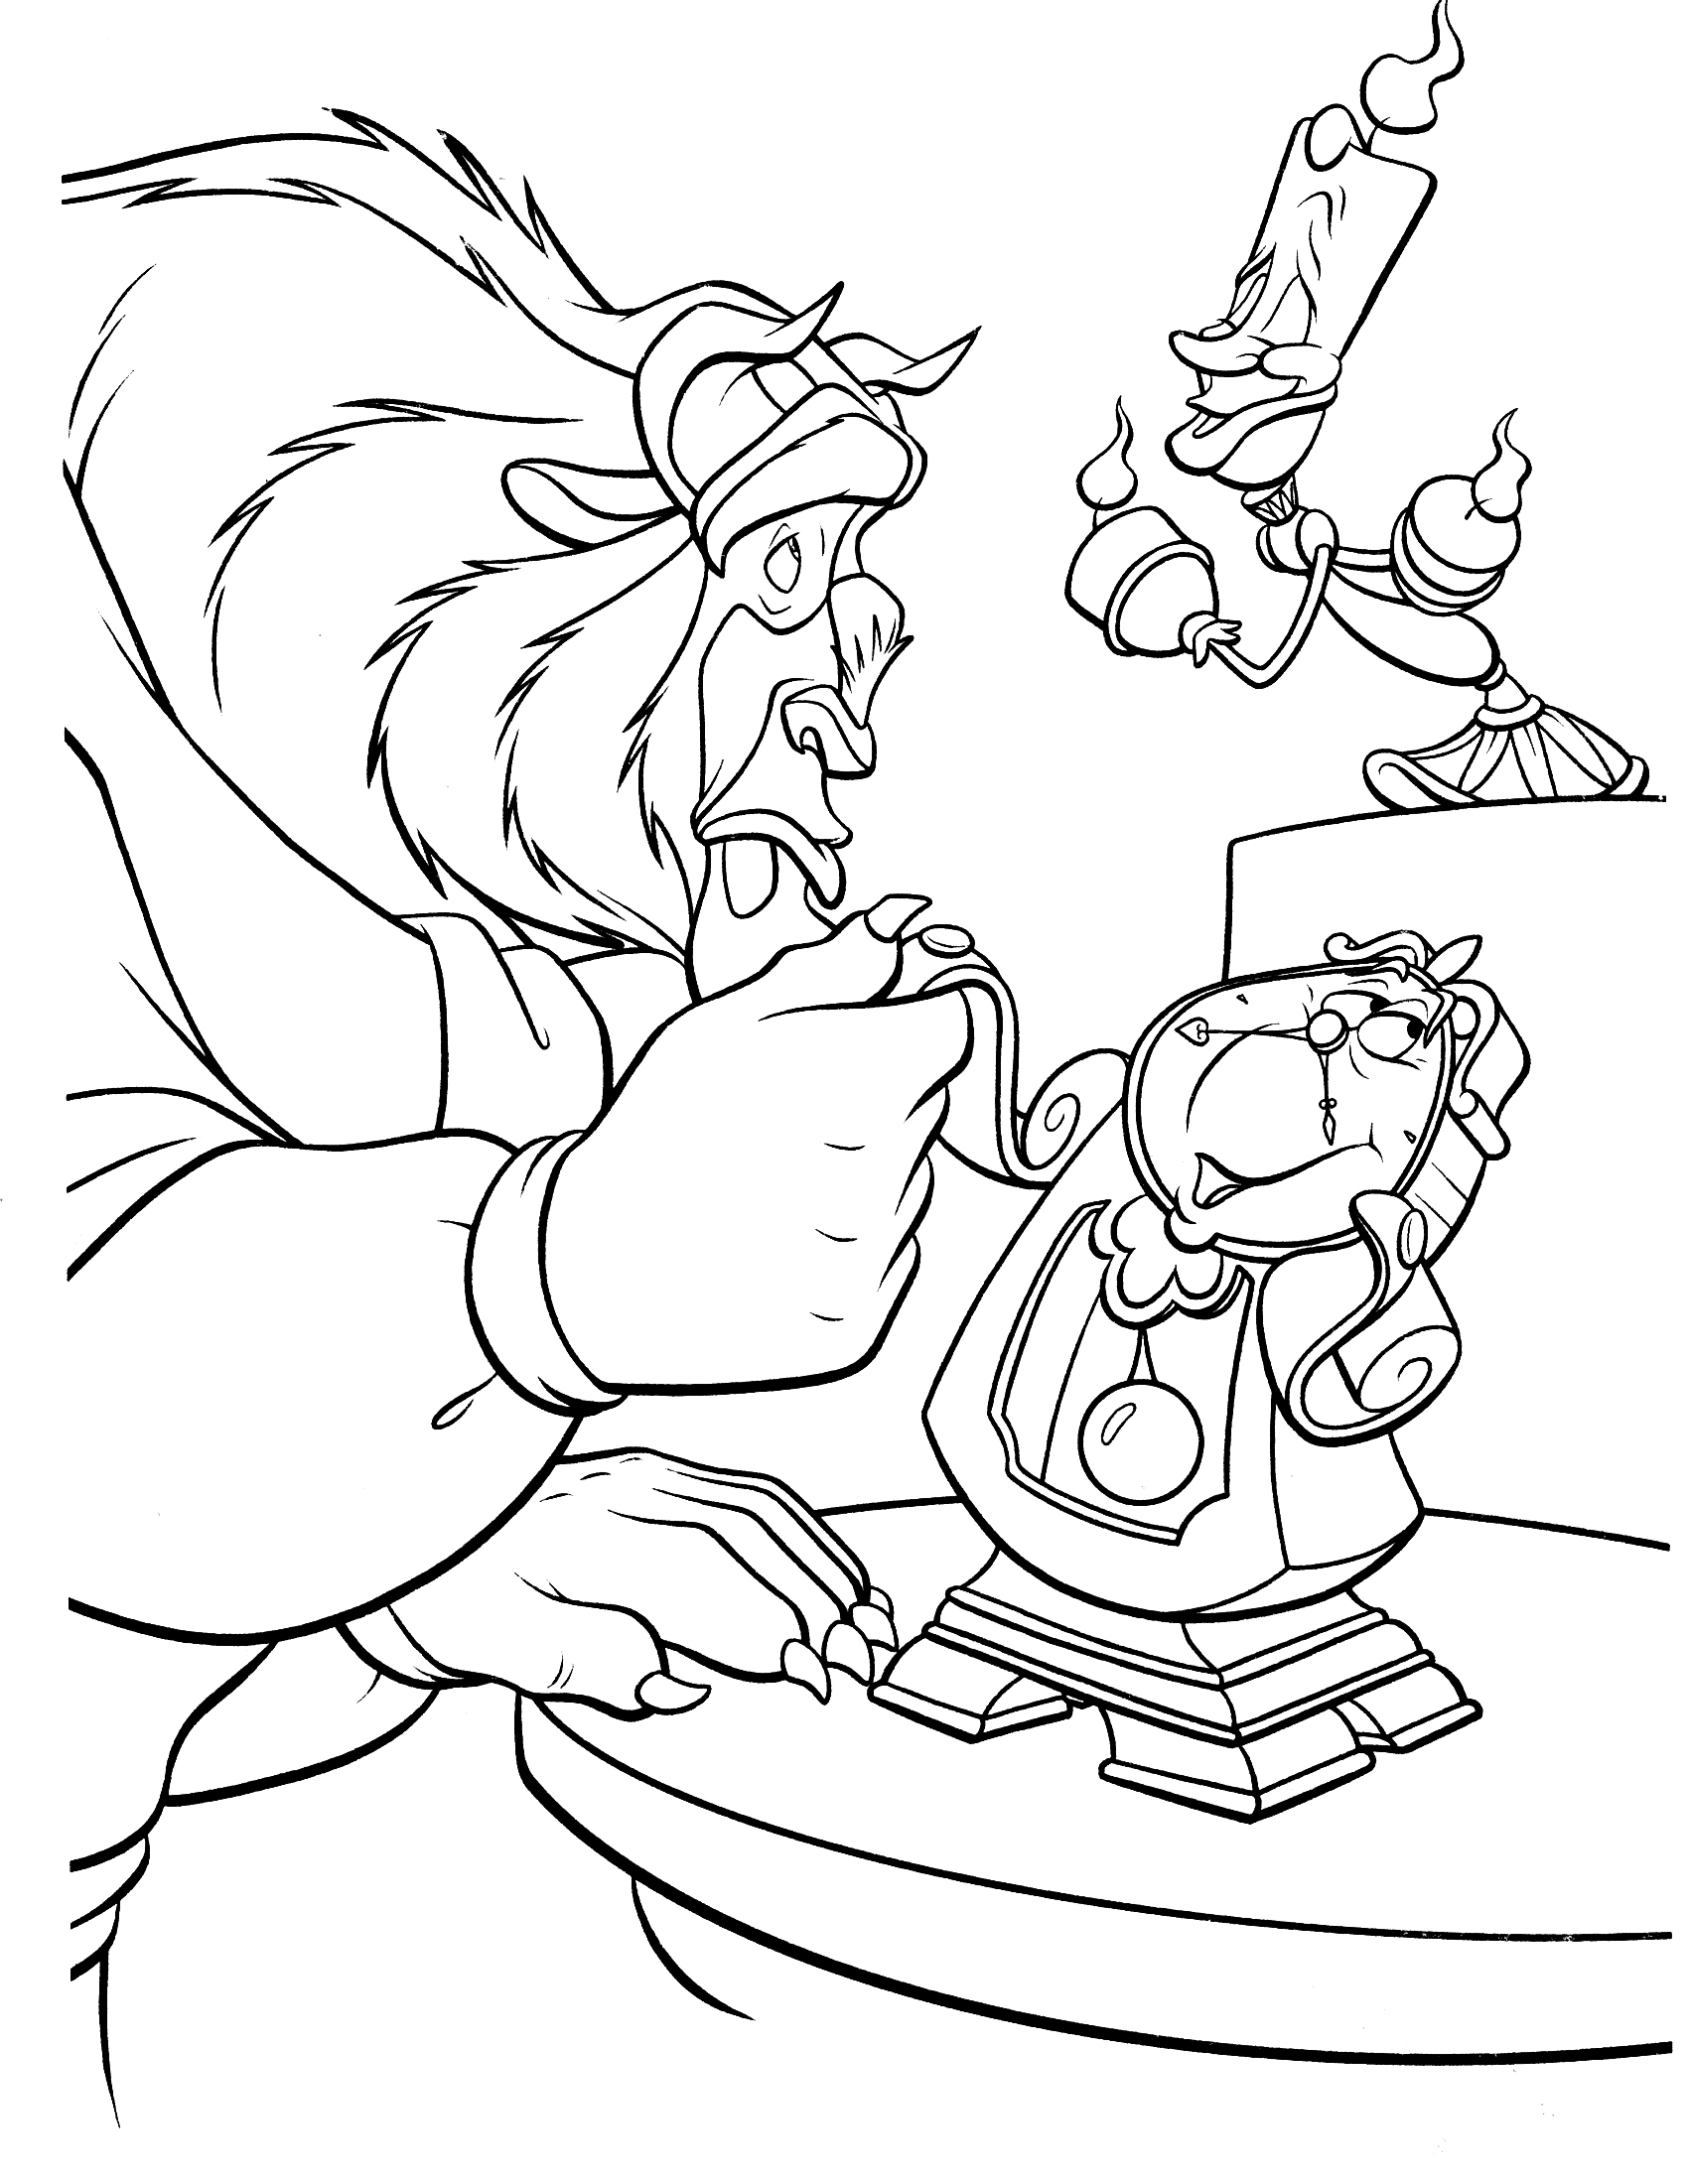 coloring pages beauty and the beast disney movie princesses belle coloring pages coloring beauty beast and pages the